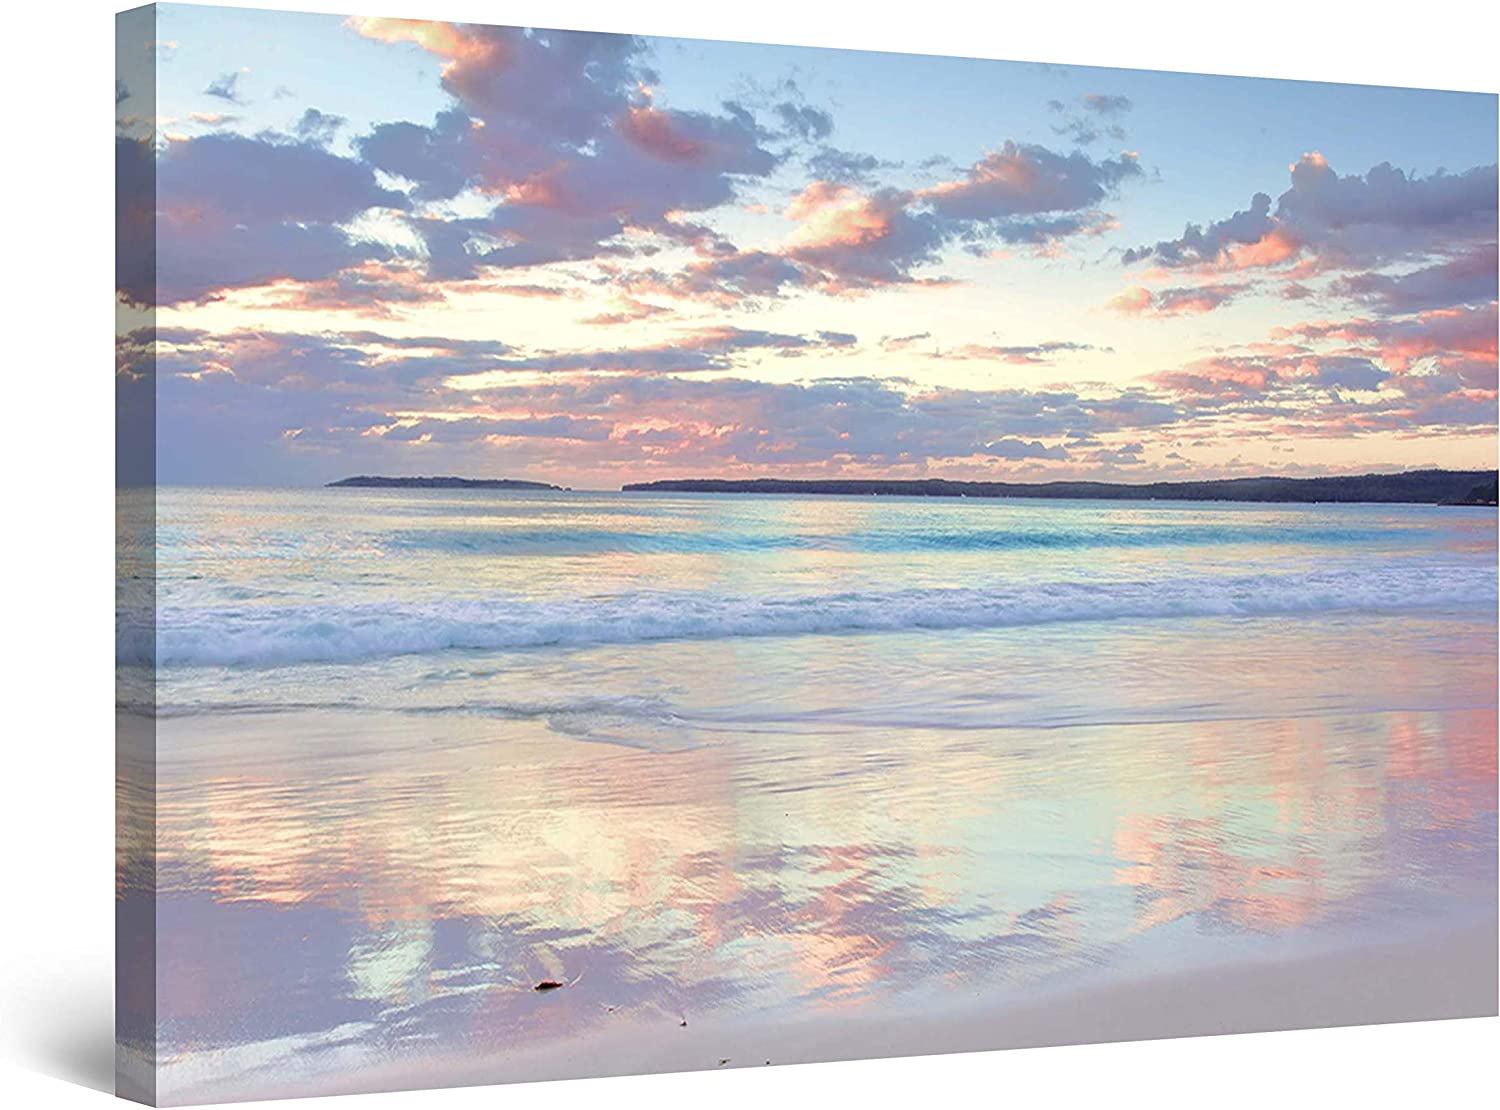 Startonight Wall Art Canvas Daydream Frame Serenity All stores are sold Water security Beach